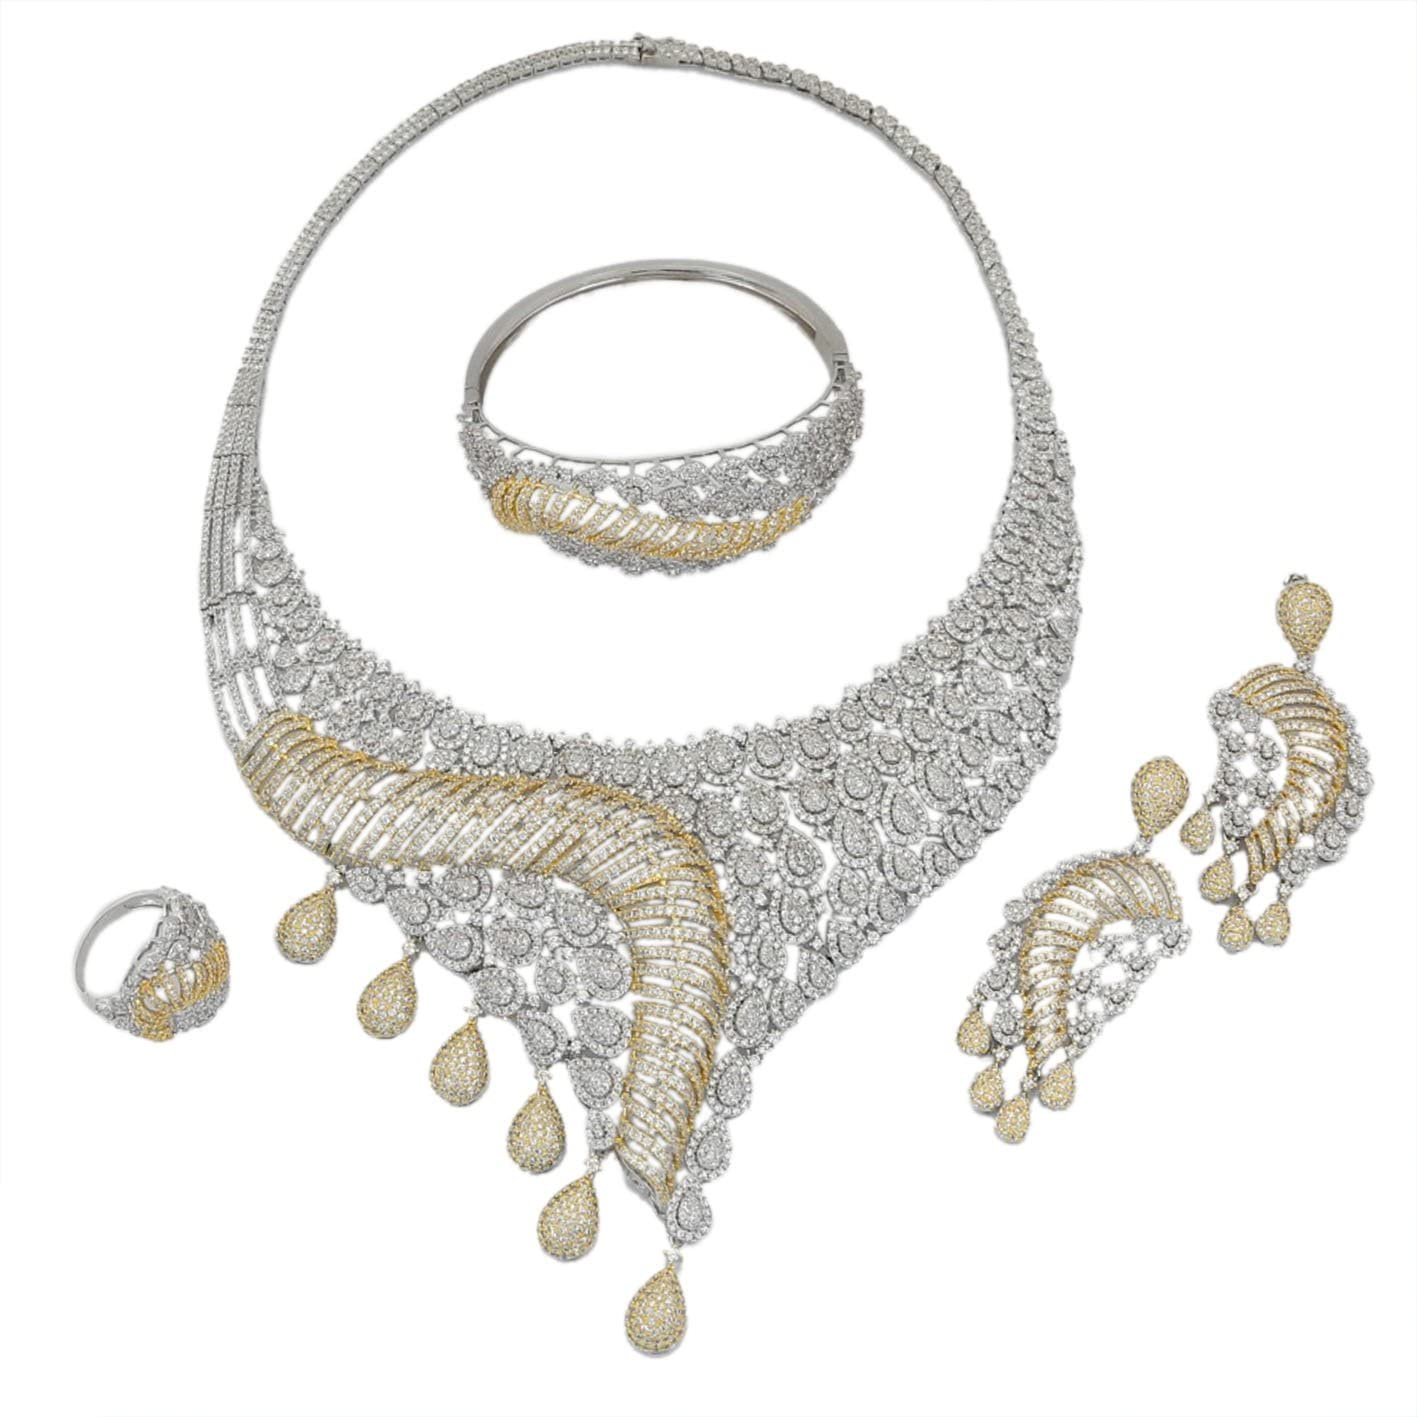 American Diamond Jewelry Set Earrings Rings Costume Choice Fort Worth Mall Sau Necklace